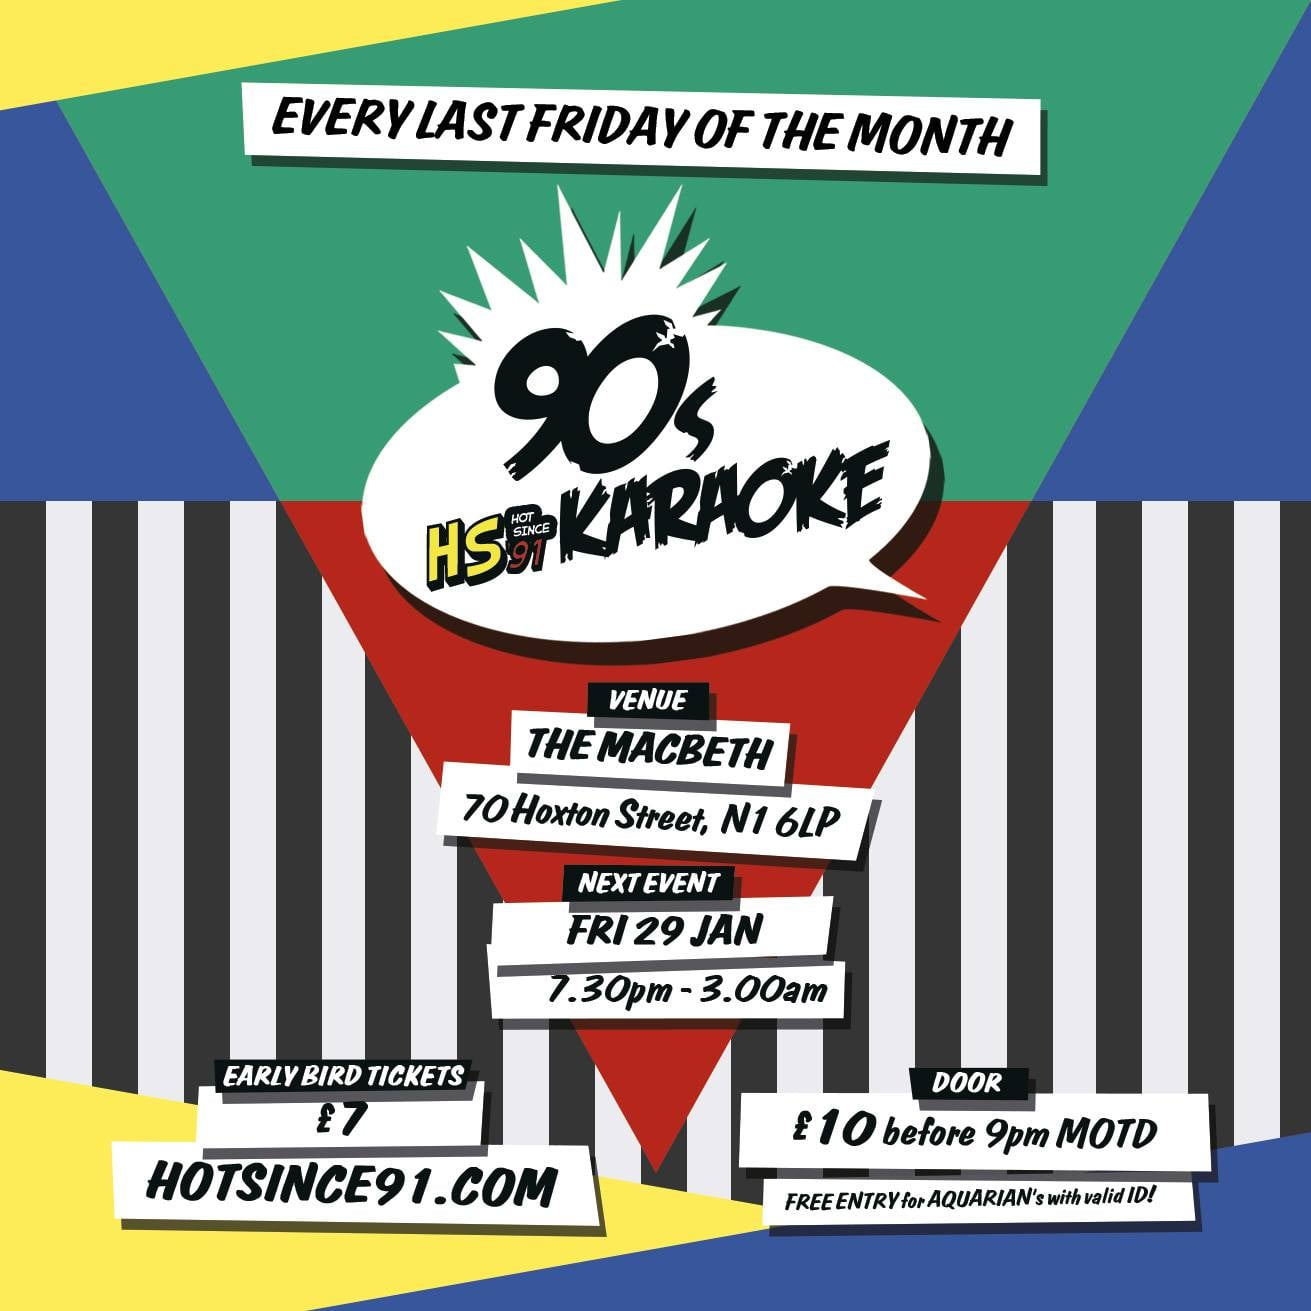 GREAT NEWS – WE'RE OFFICIALLY EVERY LAST FRIDAY OF THE MONTH @ THE MACBETH IN SHOREDITCH!    If you're a 90s junkie looking for a nostalgic fix – WE GOT YOU! 3 rooms of 90s throwbacks guaranteed to take you back to the good old days.    --------------------------  ----------    ROOM 1:   PRE-TURN UP/90S KARAOKE/VINTAGE POP-UP STORE/AFTERPARTY    0730pm – 0900pm: PRE-TURN UP   DJ:   Ruff N Tuff    0800pm – 0900pm: HAPPY HOUR Doubles for singles on all shots + 2 for 1 on Grolsch Beer!  0900pm – 1200am: FUN TIME PARTYING Karaoke, Free Fried Chicken, Free Candy Floss & Giveaways Hosted by Reuben Christian  0730pm – 1200am: VINTAGE POP-UP STORE Affordable hand picked vintage clothing – 90s sportswear, patterned shirts, denim + more  1200am – 0300am: AFTER PARTY Hip Hop • RnB • Bashment • Trap • Afrobeats • Jungle • Garage • Future Beats DJ: Ruff N Tuff  Got what it takes to rock the party? VIEW OUR KARAOKE TRACK LIST hotsince91.uk/tracklist   ------------------------------------  ROOM 2: 90S GAMES ROOM  0730pm – 0200am: VIDEO GAMES Super Nintendo & Sega Megadrive Tournaments  0730pm – 0200am: CLASSIC GAMES Jumbo Jenga, Giant Connect 4, A4 Playing Cards  ------------------------------------  ROOM 3: 90S PHOTO BOOTH  0730pm – 1200am: PROFESSIONAL PHOTO BOOTH 90s Themed Props & Set Studio – Photography by  Picturell.com  INSTANT PRINT PHOTOS FOR £5  0730pm – 1200am: SERVE YOURSELFIE Selfie Booth with Lighting + 90s Themed Backdrop  ------------------------------------  DRESS CODE: 90's Wear Strongly Advised  SUPER EARLY BIRD TICKETS: £5 EARLY BIRD TICKETS: £7 ON THE DOOR: £10 before 9pm , £12 after FREE ENTRY FOR ALL AQUARIANS WITH VALID ID  *WARNING* This is a guaranteed road block affair, GET THERE EARLY TO AVOID DISAPPOINTMENT!  18+ ONLY – ID ESSENTIAL (Passport/Photo I.D. Driving Licence)